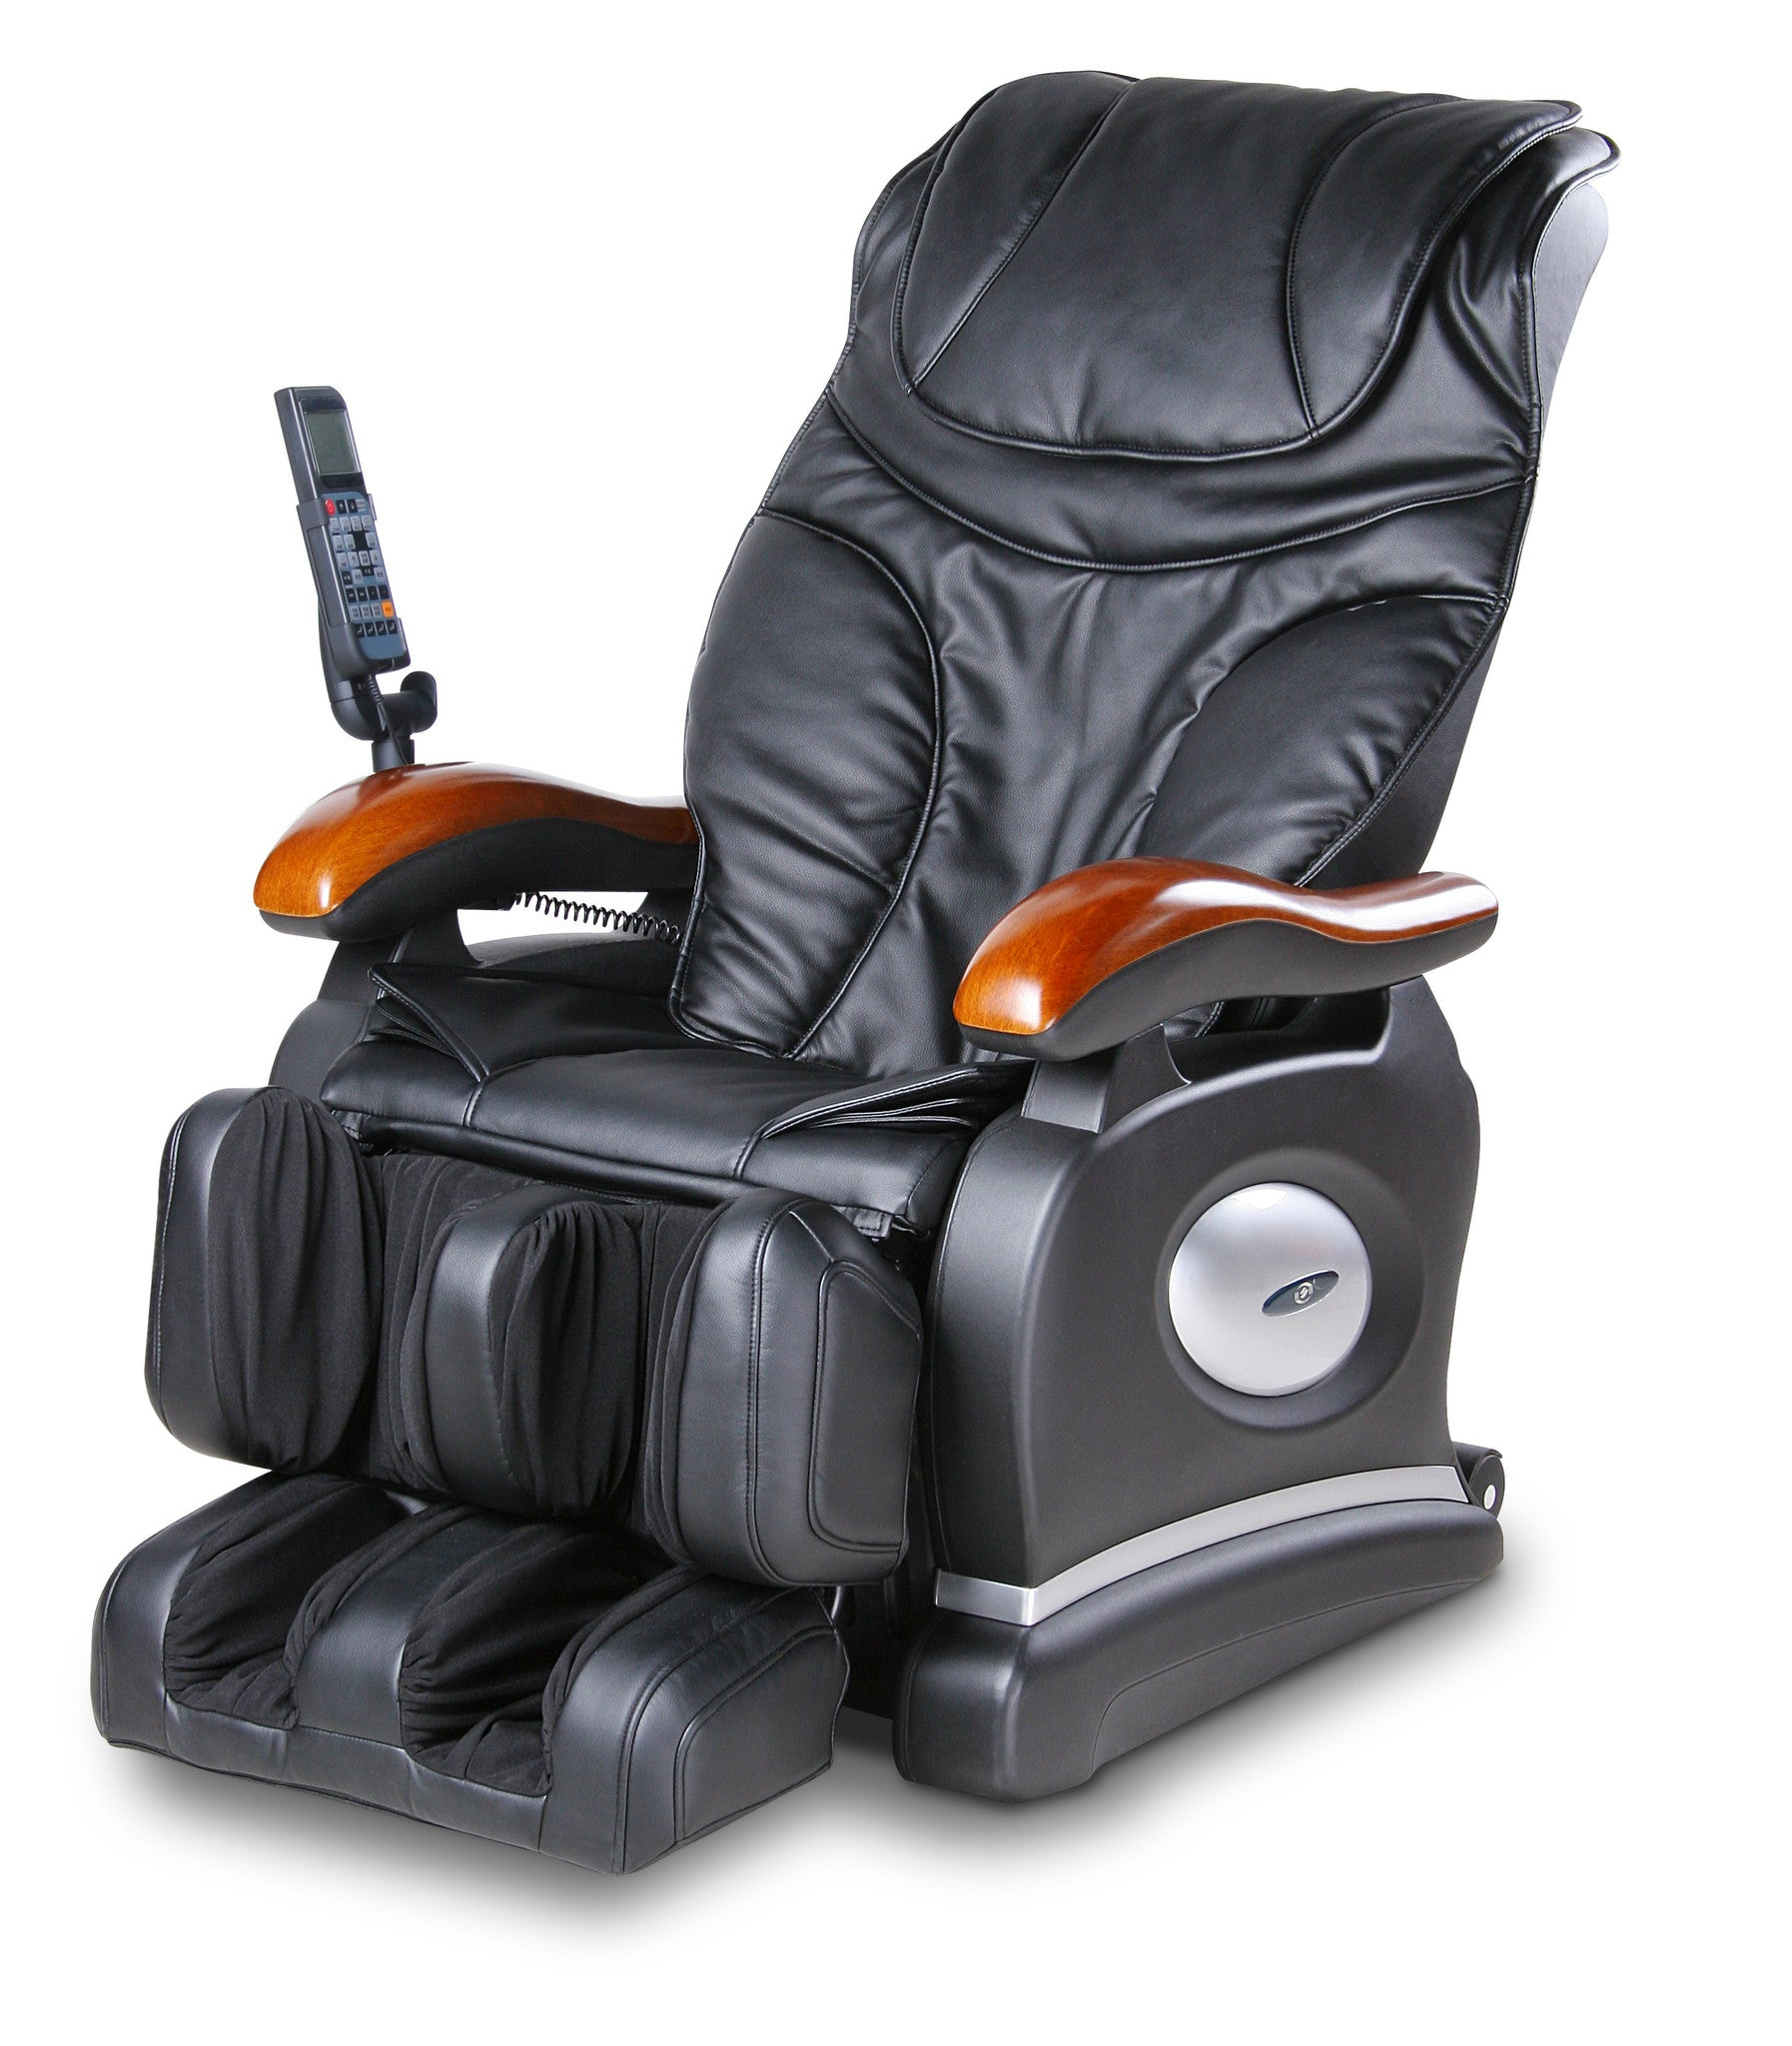 Buy i fort IC1118 Massage Chair line Massage Chair Gallery